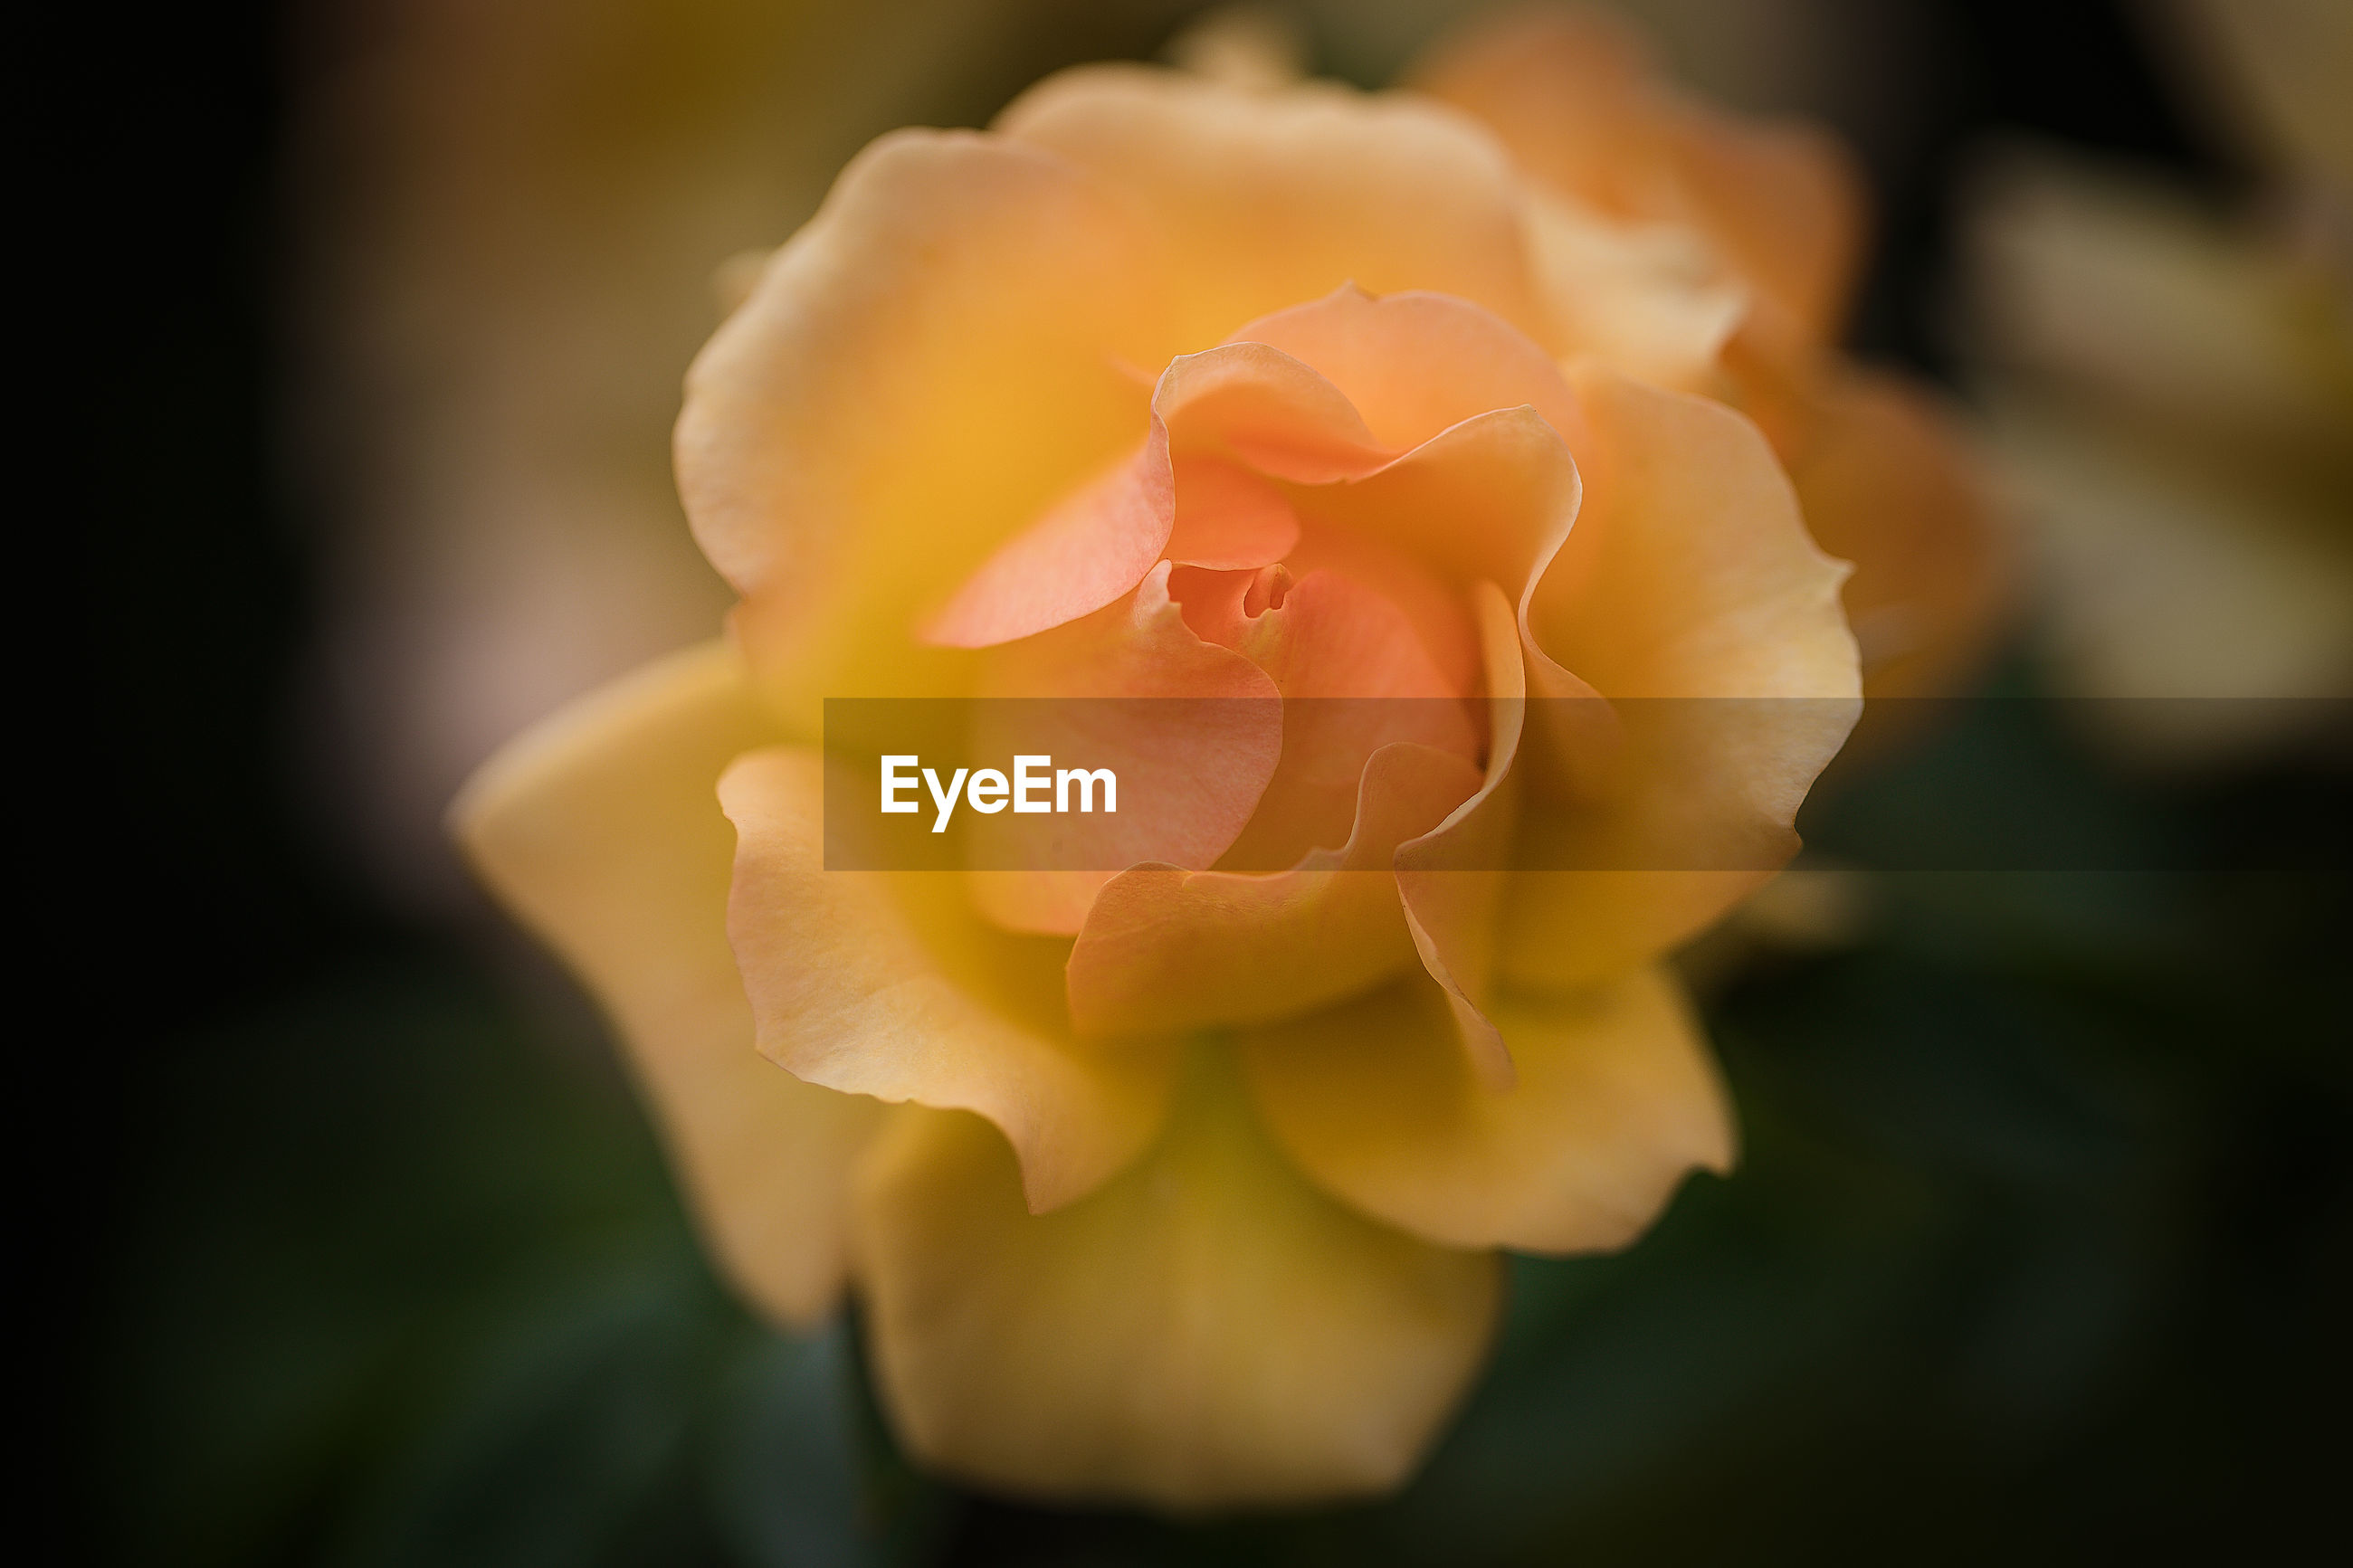 Close-up of rose against blurred background